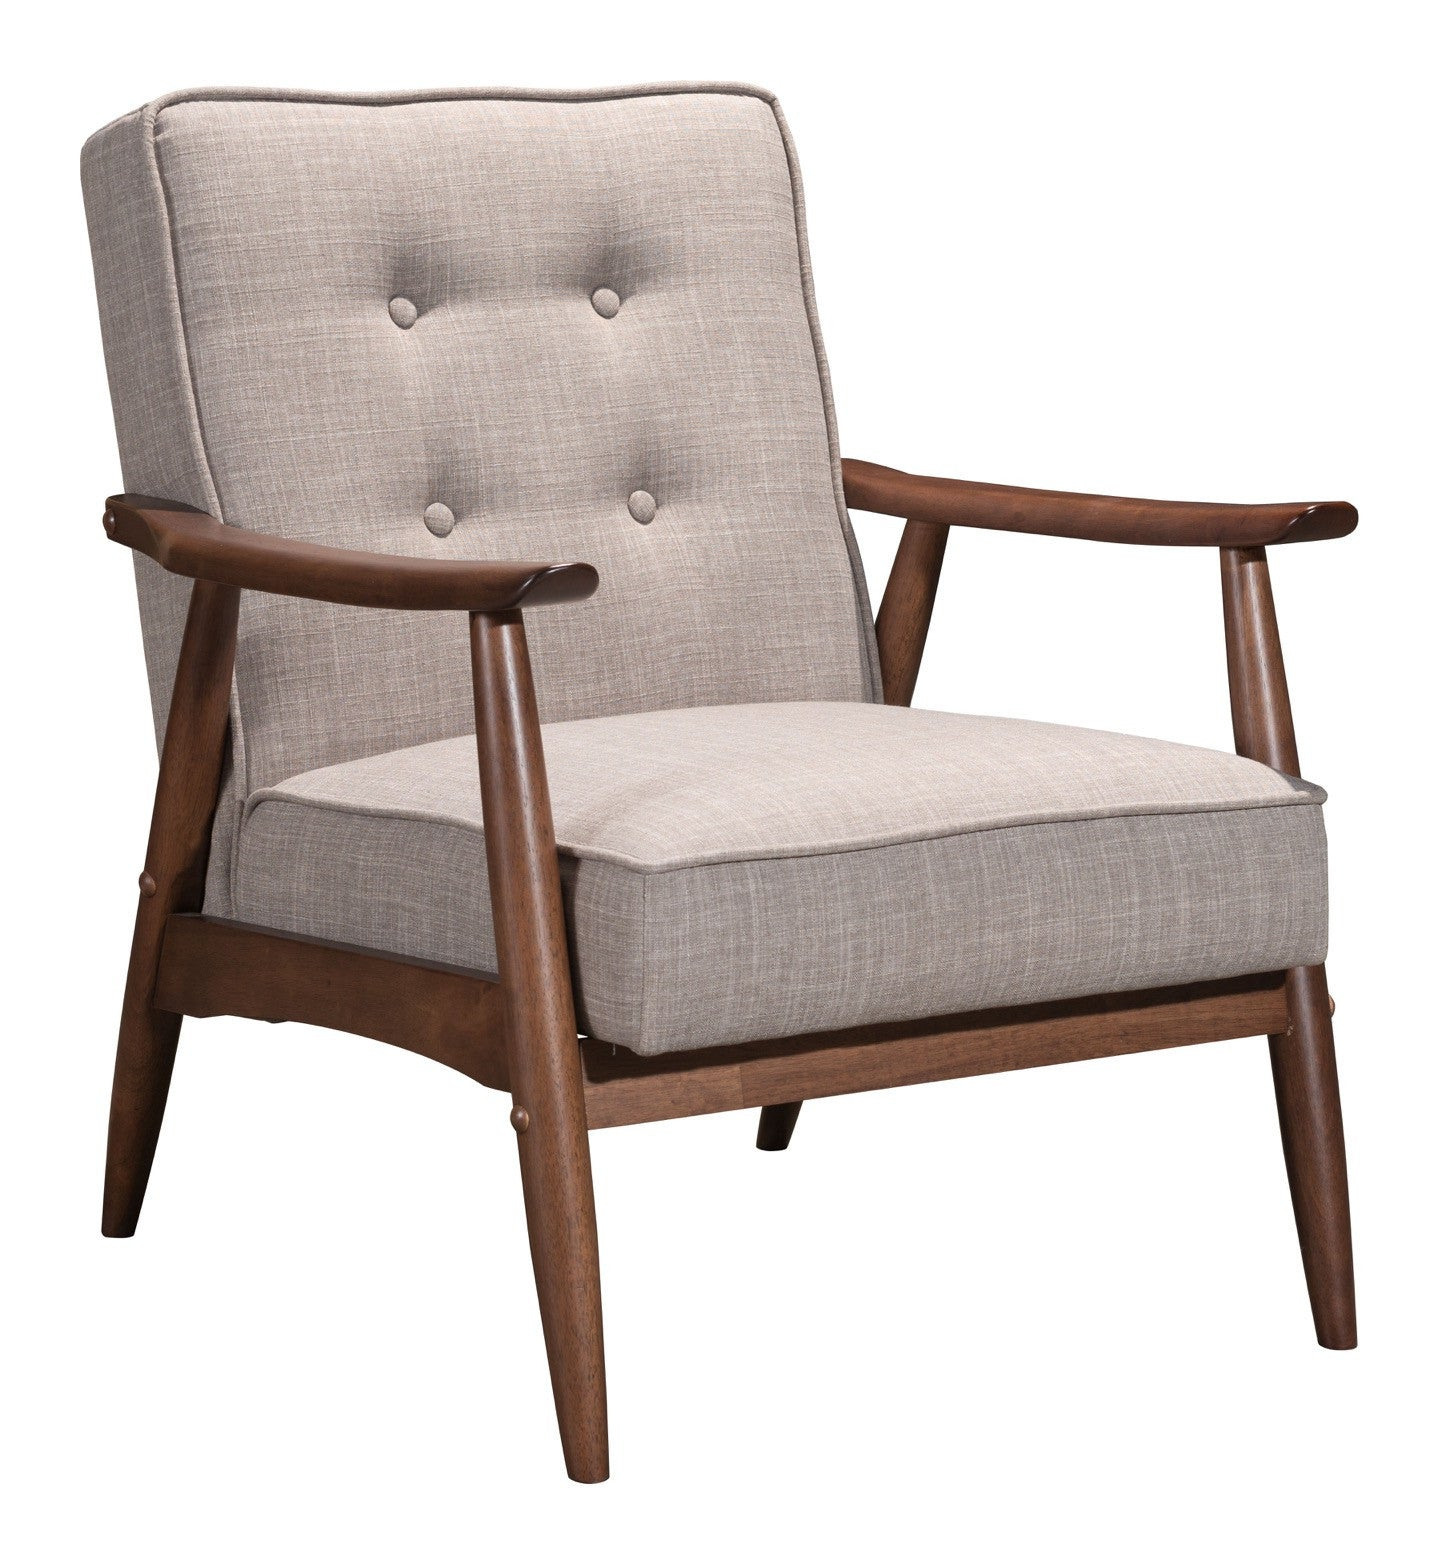 Rocky Arm Chair in Tufted Putty Gray Polly Linen on Walnut Finish Wood